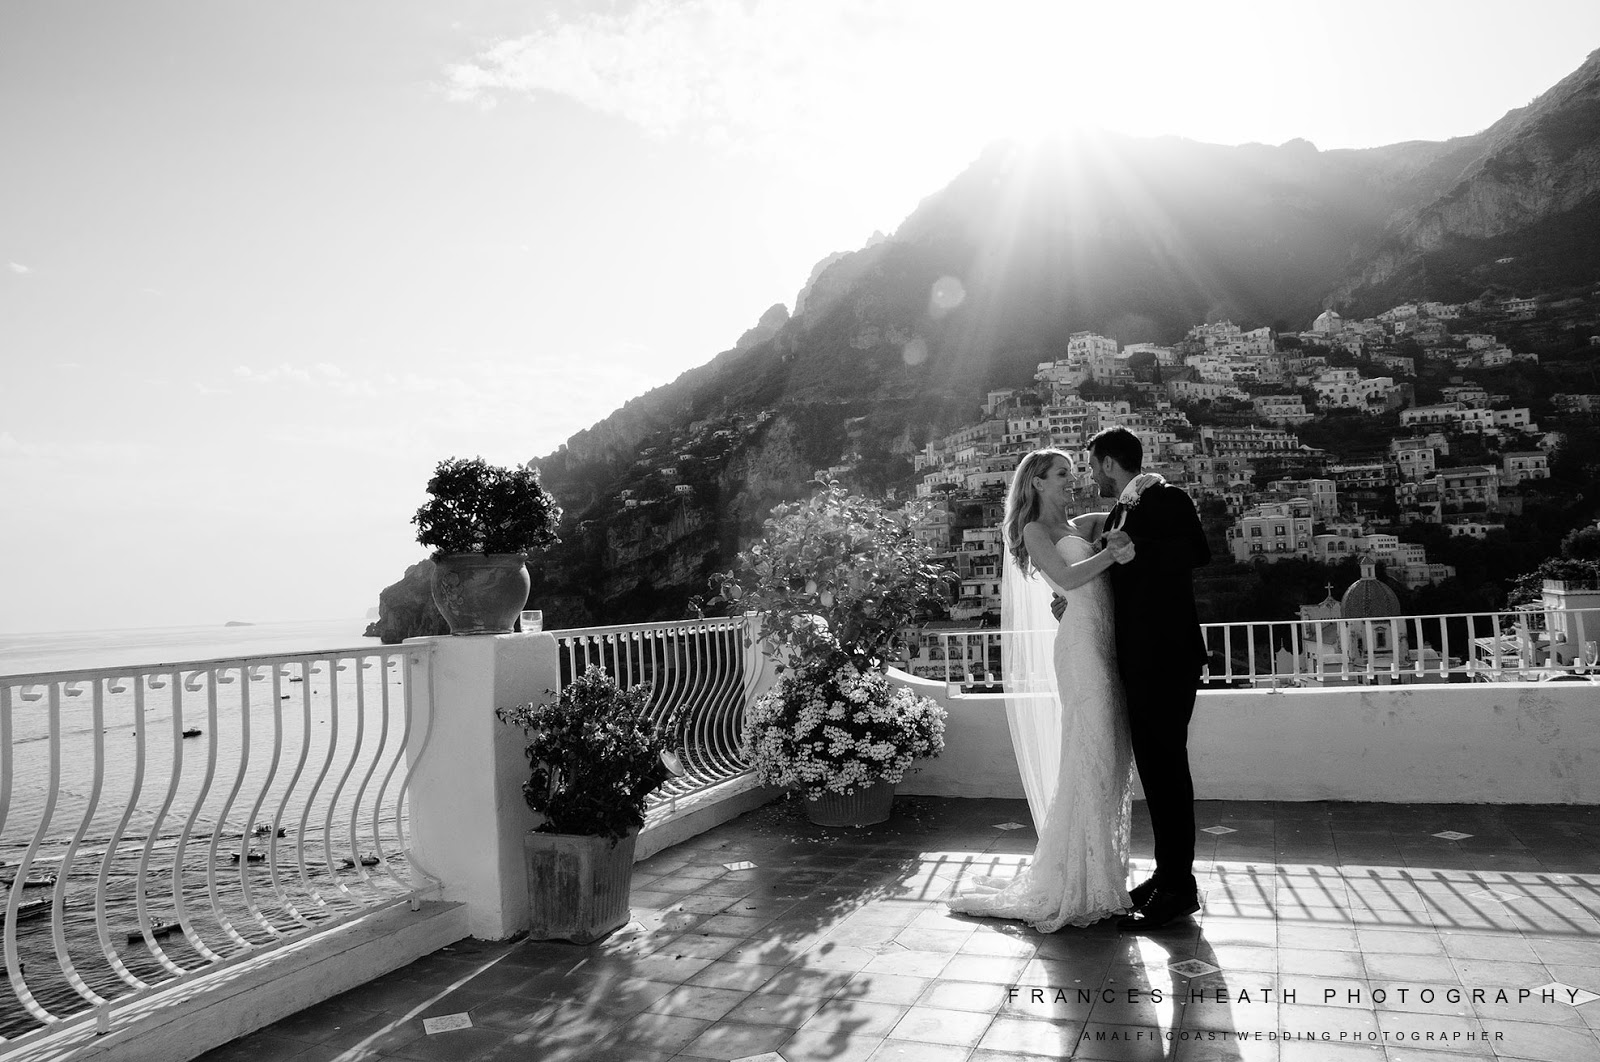 Wedding at Hotel Marincanto in Positano